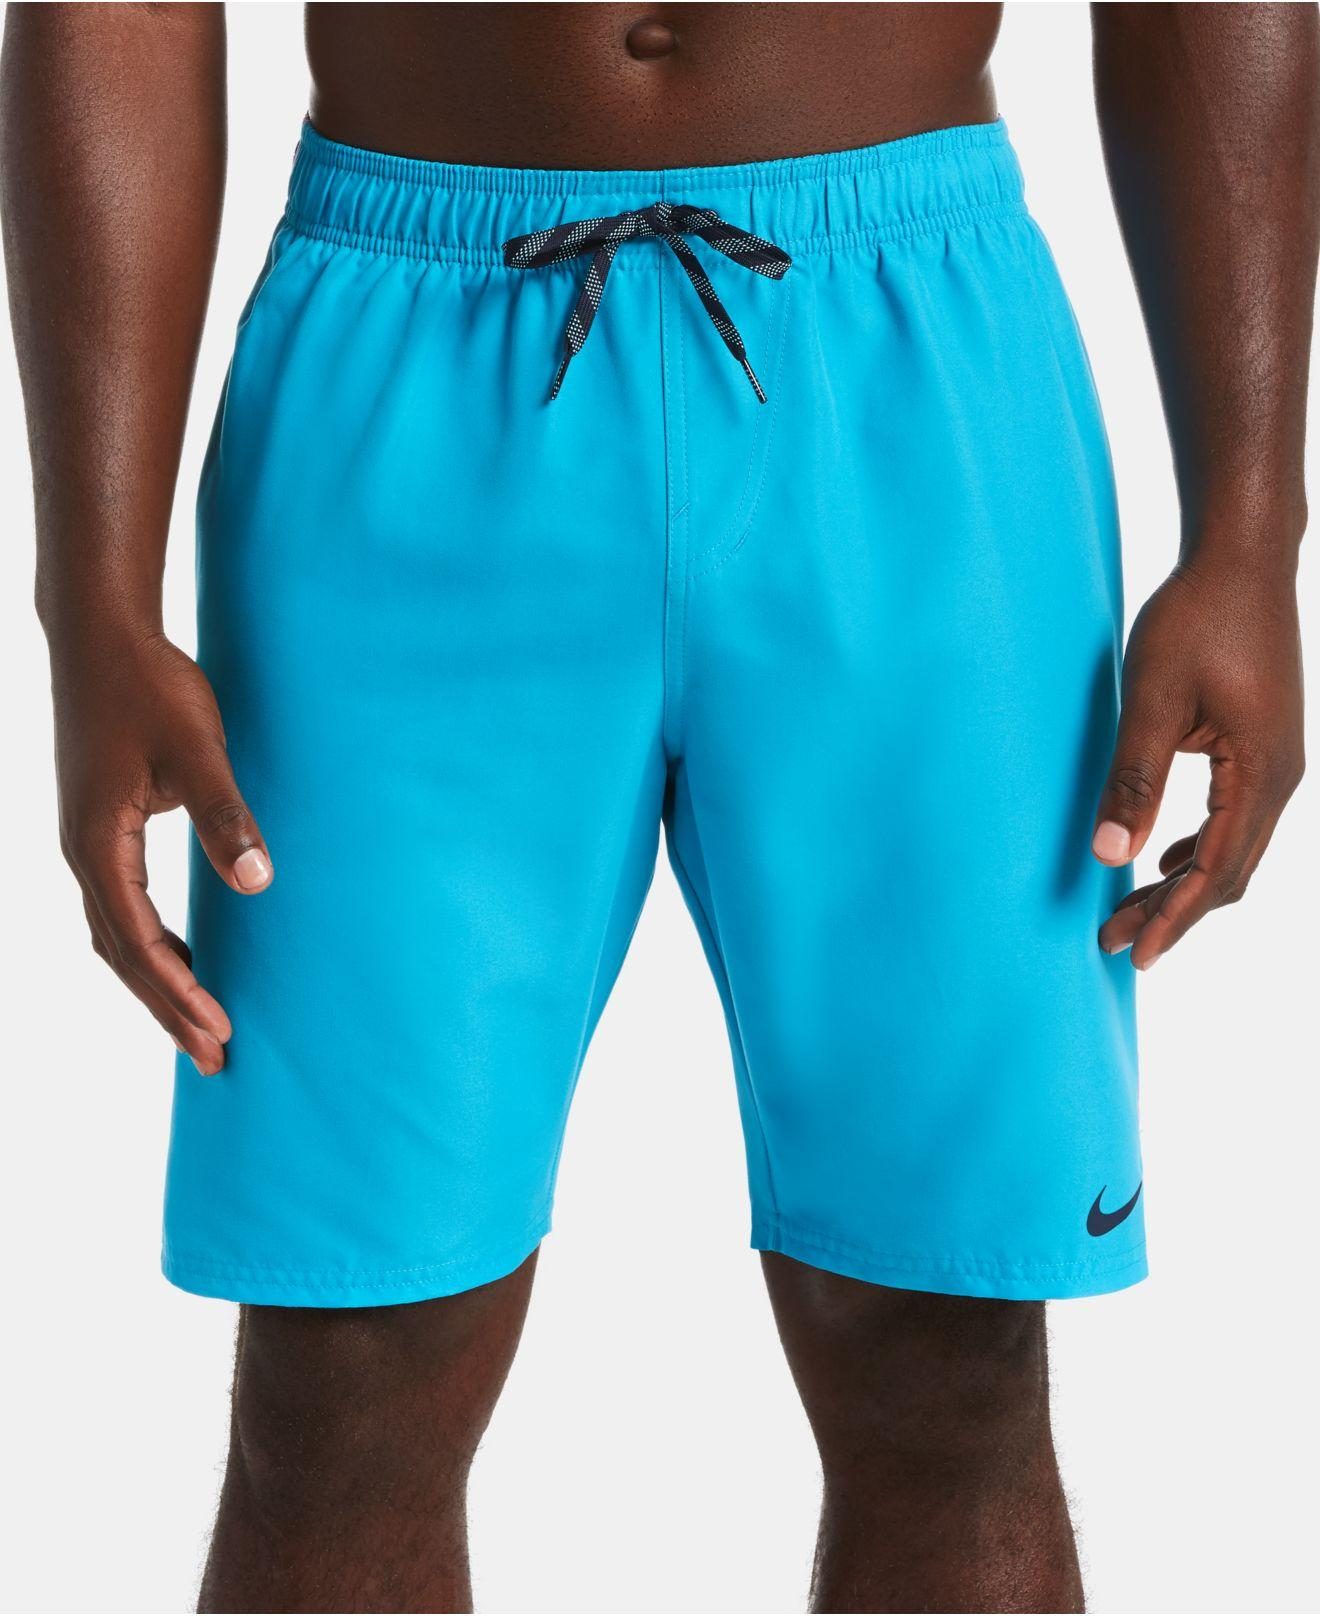 0d15f78c6e Lyst - Nike Diverge Perforated Colorblocked 9